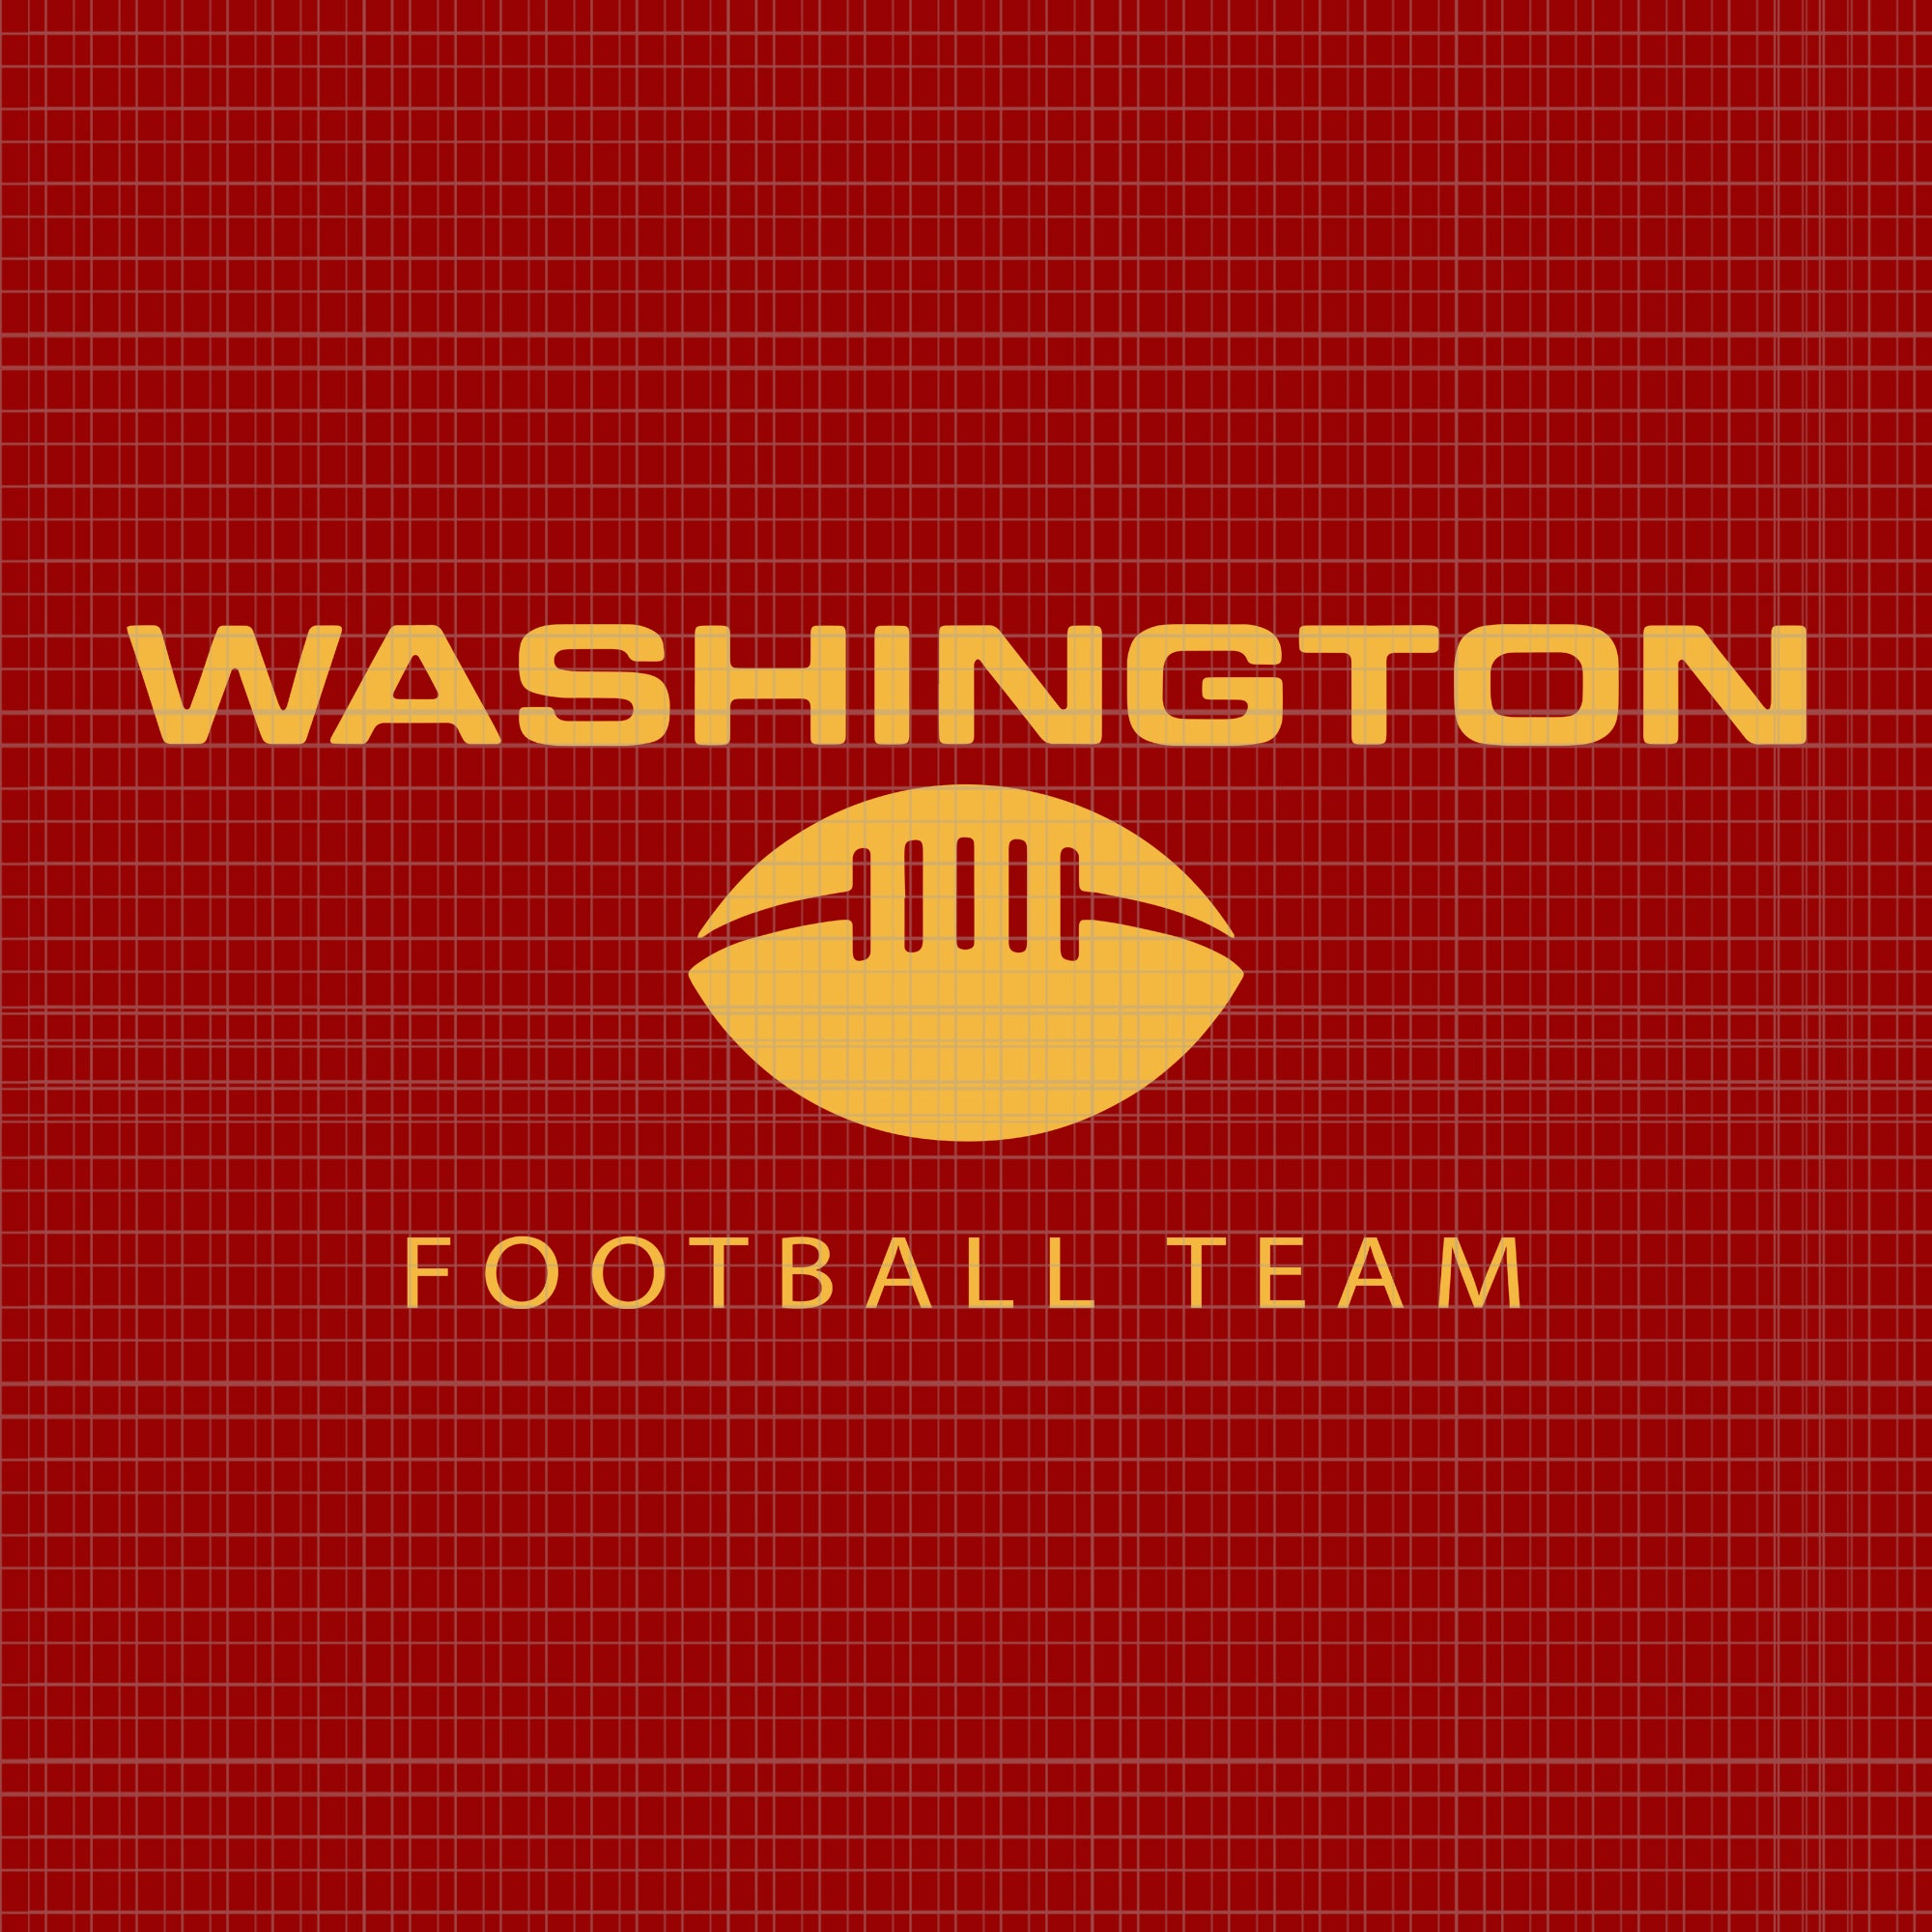 Washington football team svg, Washington football team , Washington football, football svg, football, washington team